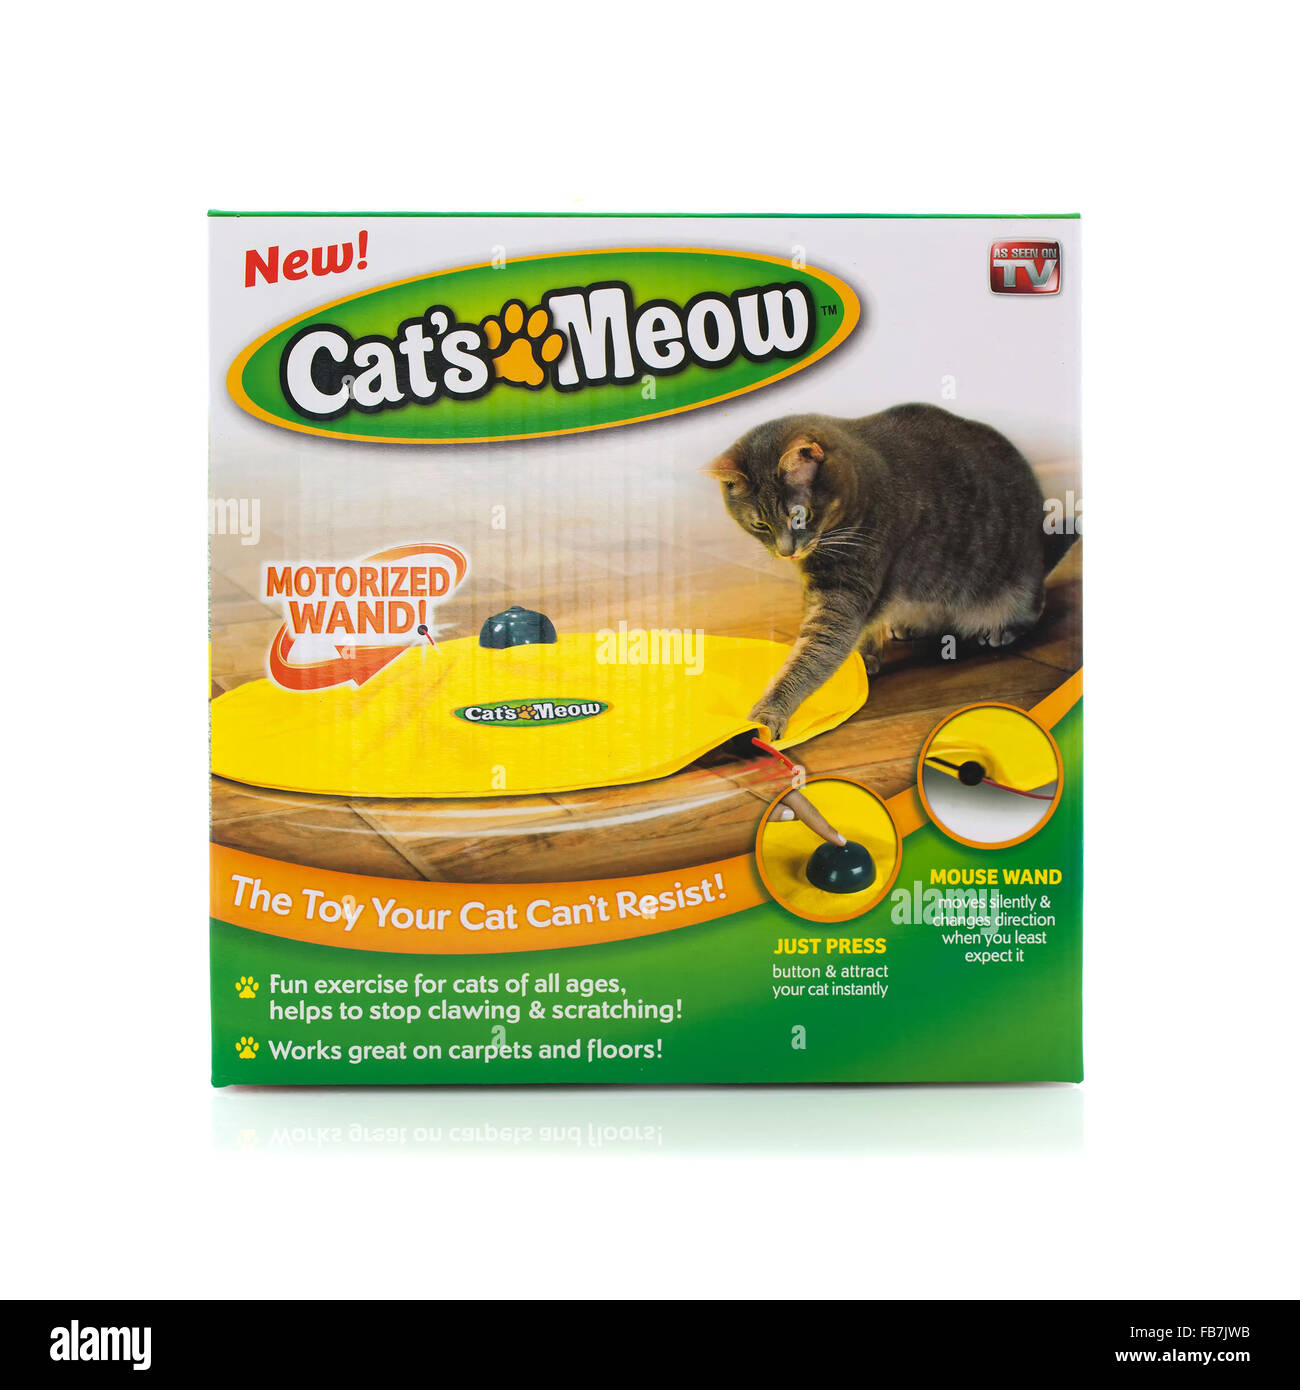 The Cats Meow Motorized Wand on a White Background - Stock Image